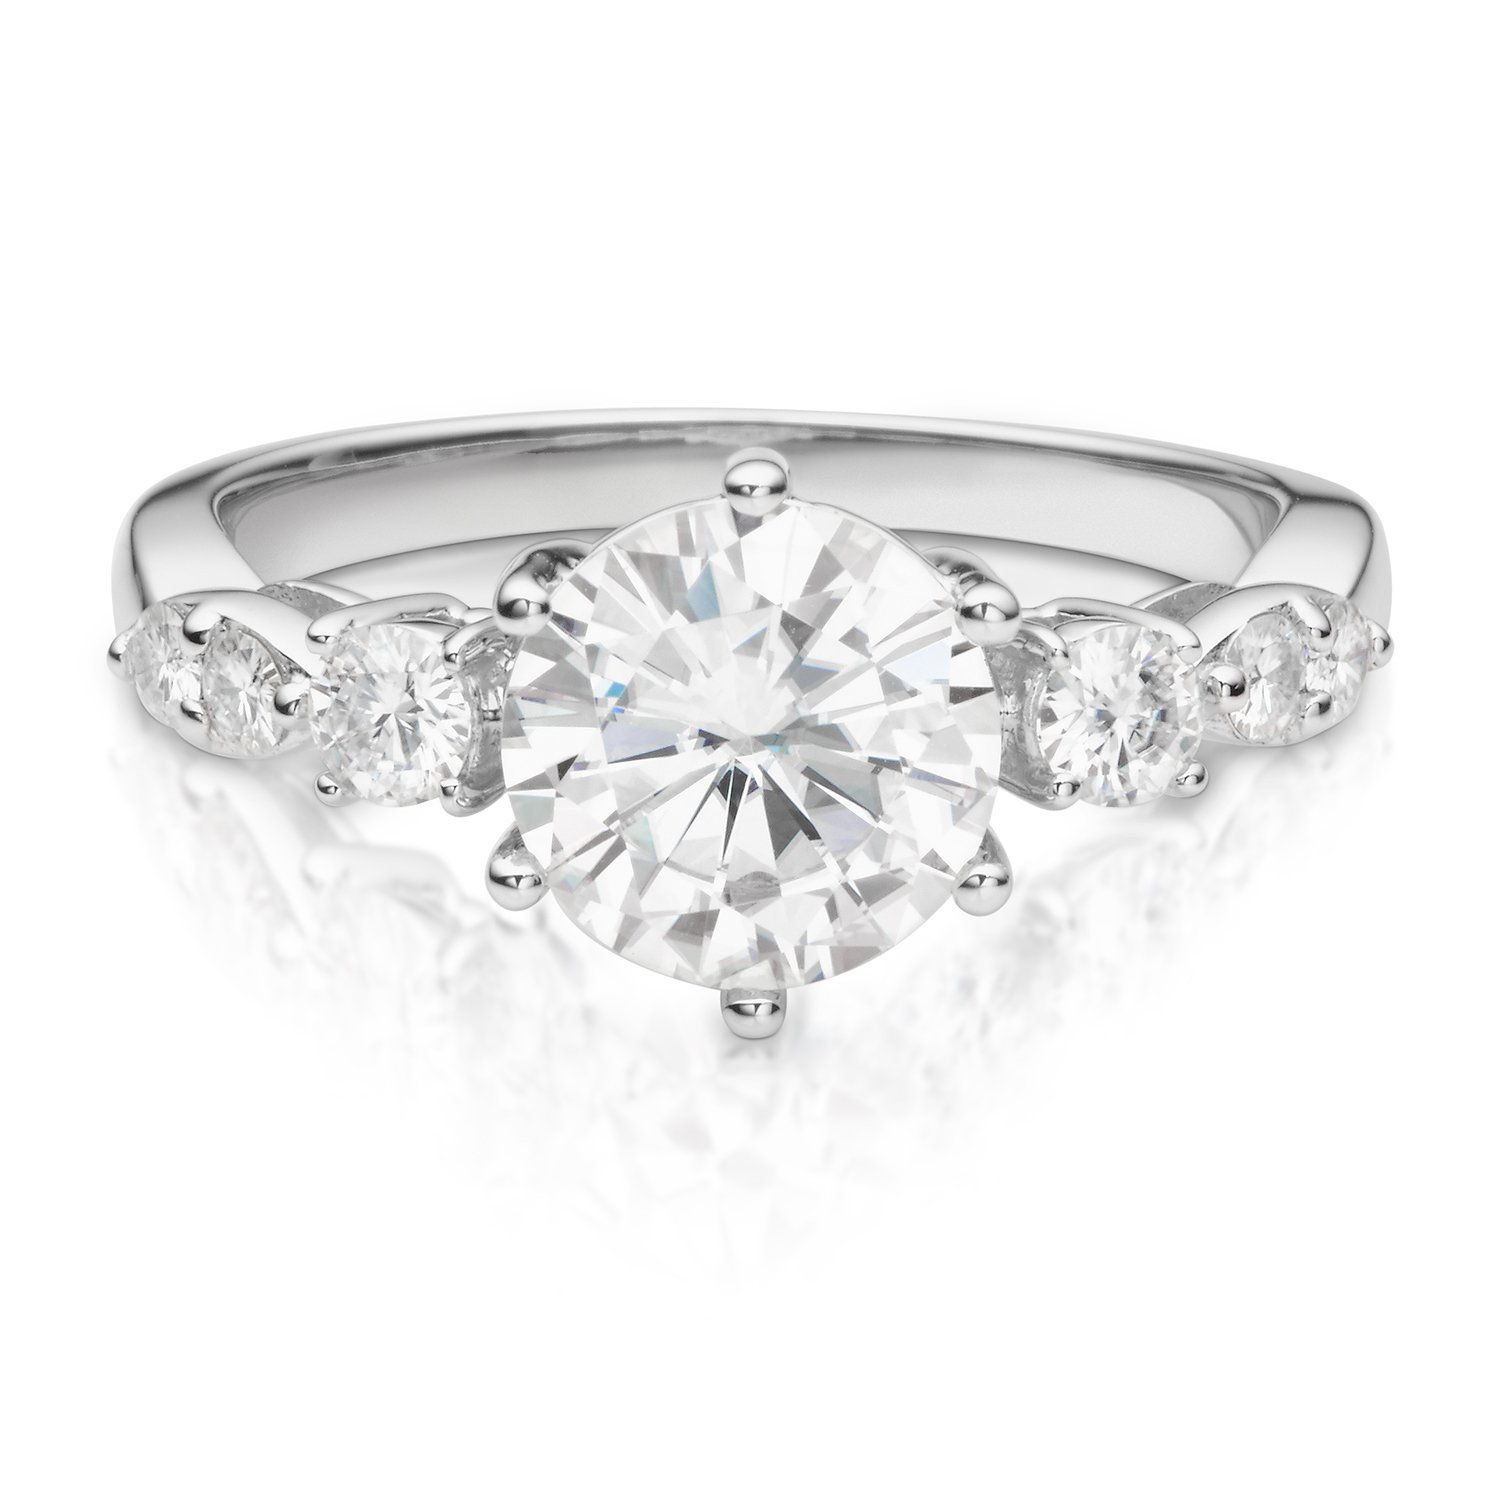 14K White Gold Moissanite by Charles & Colvard 8mm Round Engagement Ring-size 6, 2.22cttw DEW